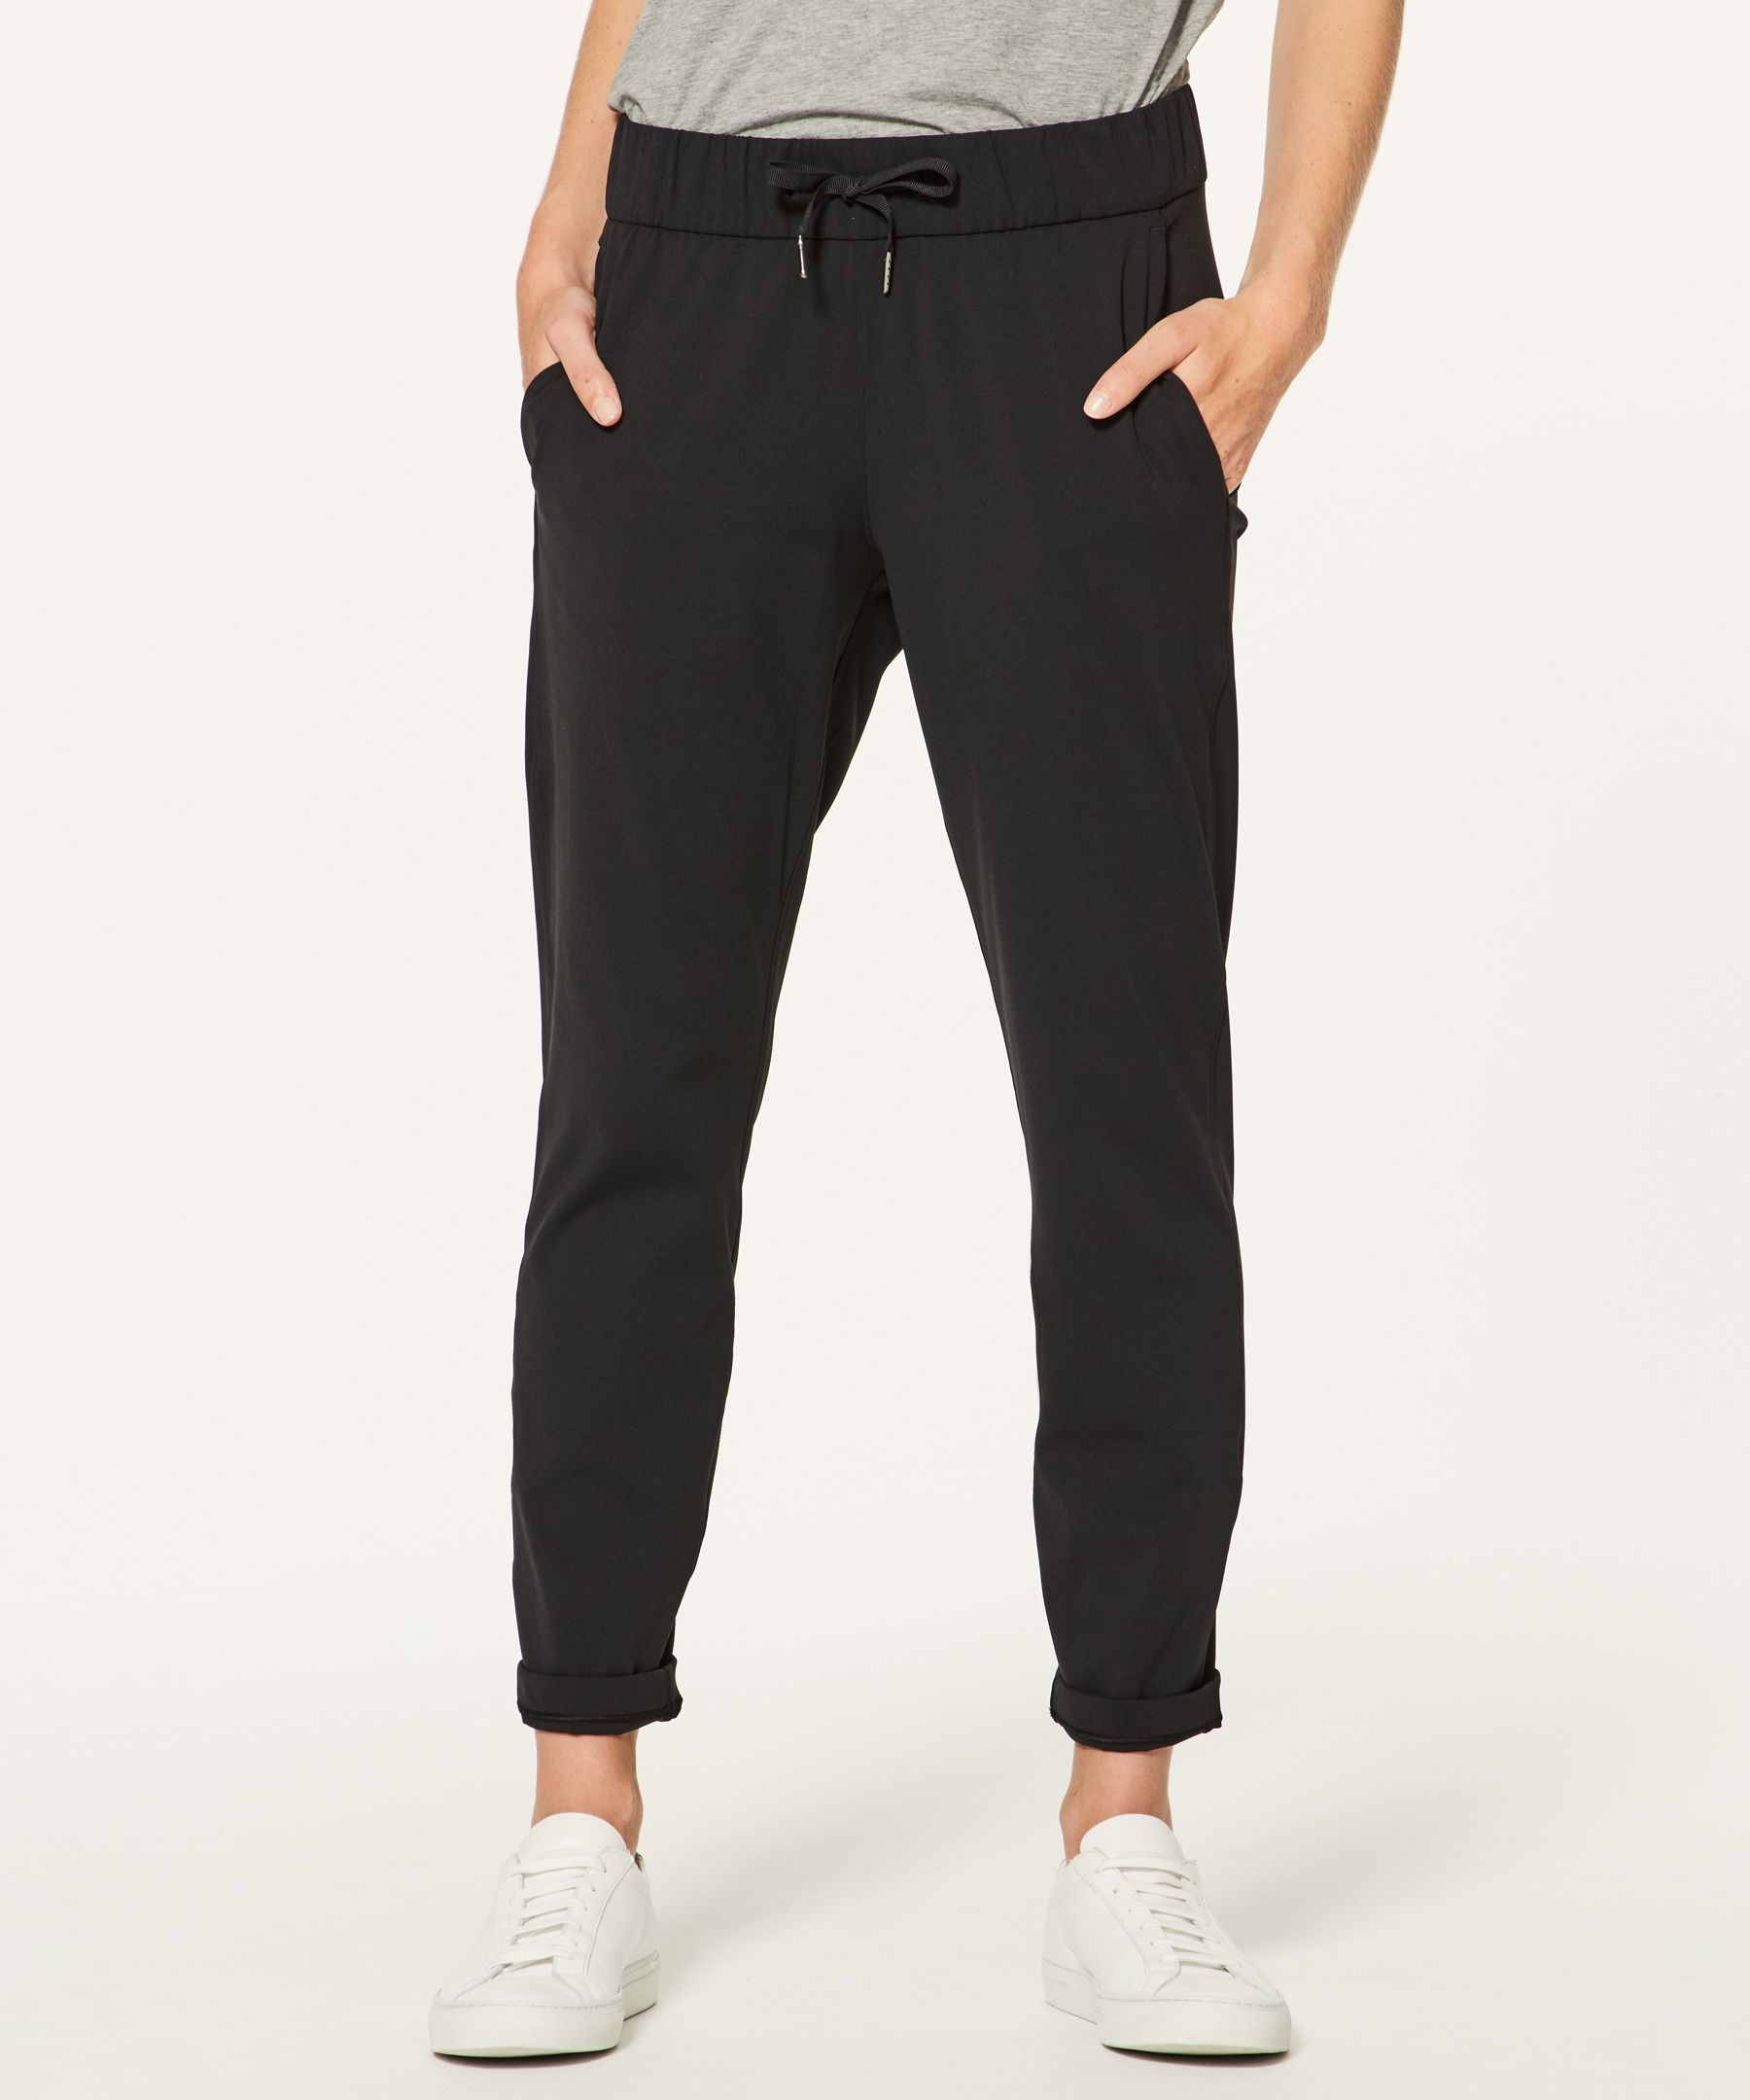 f9a0583c5a3976 With four-way stretch and travel-friendly fabric, these 7/8 pants help you  take adventures in stride.